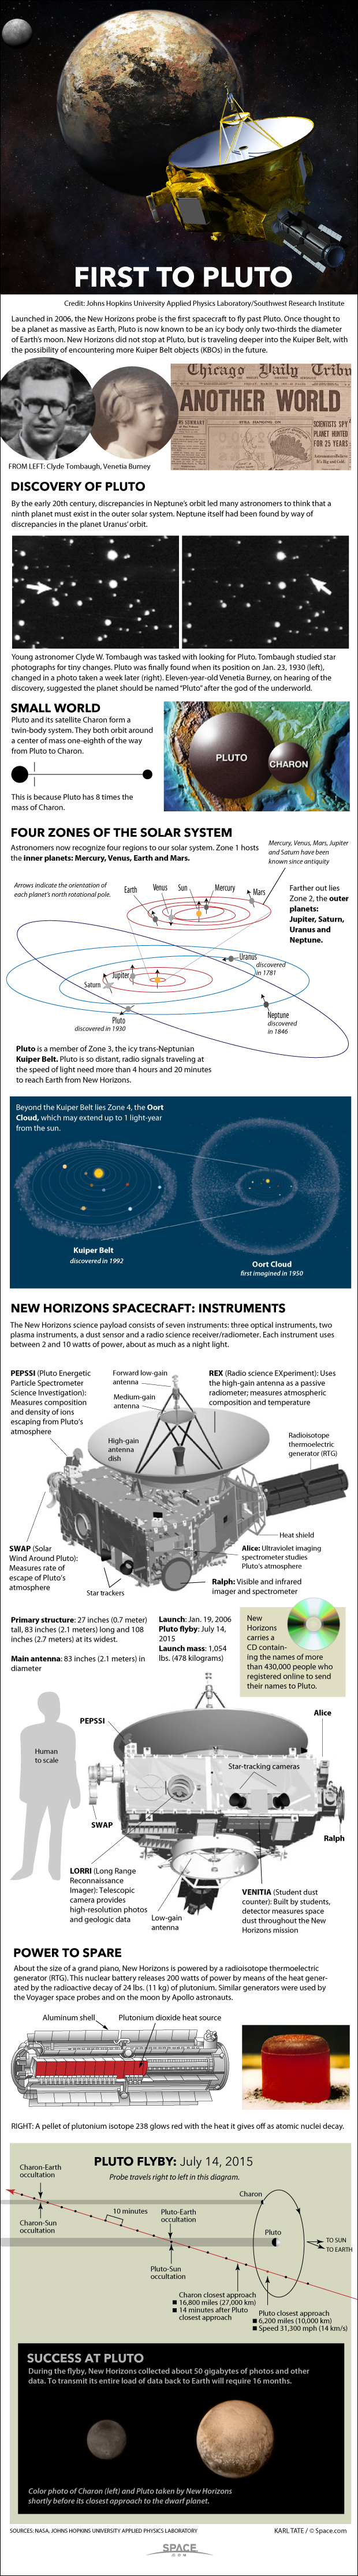 How the New Horizons Pluto Flyby Works (Infographic)